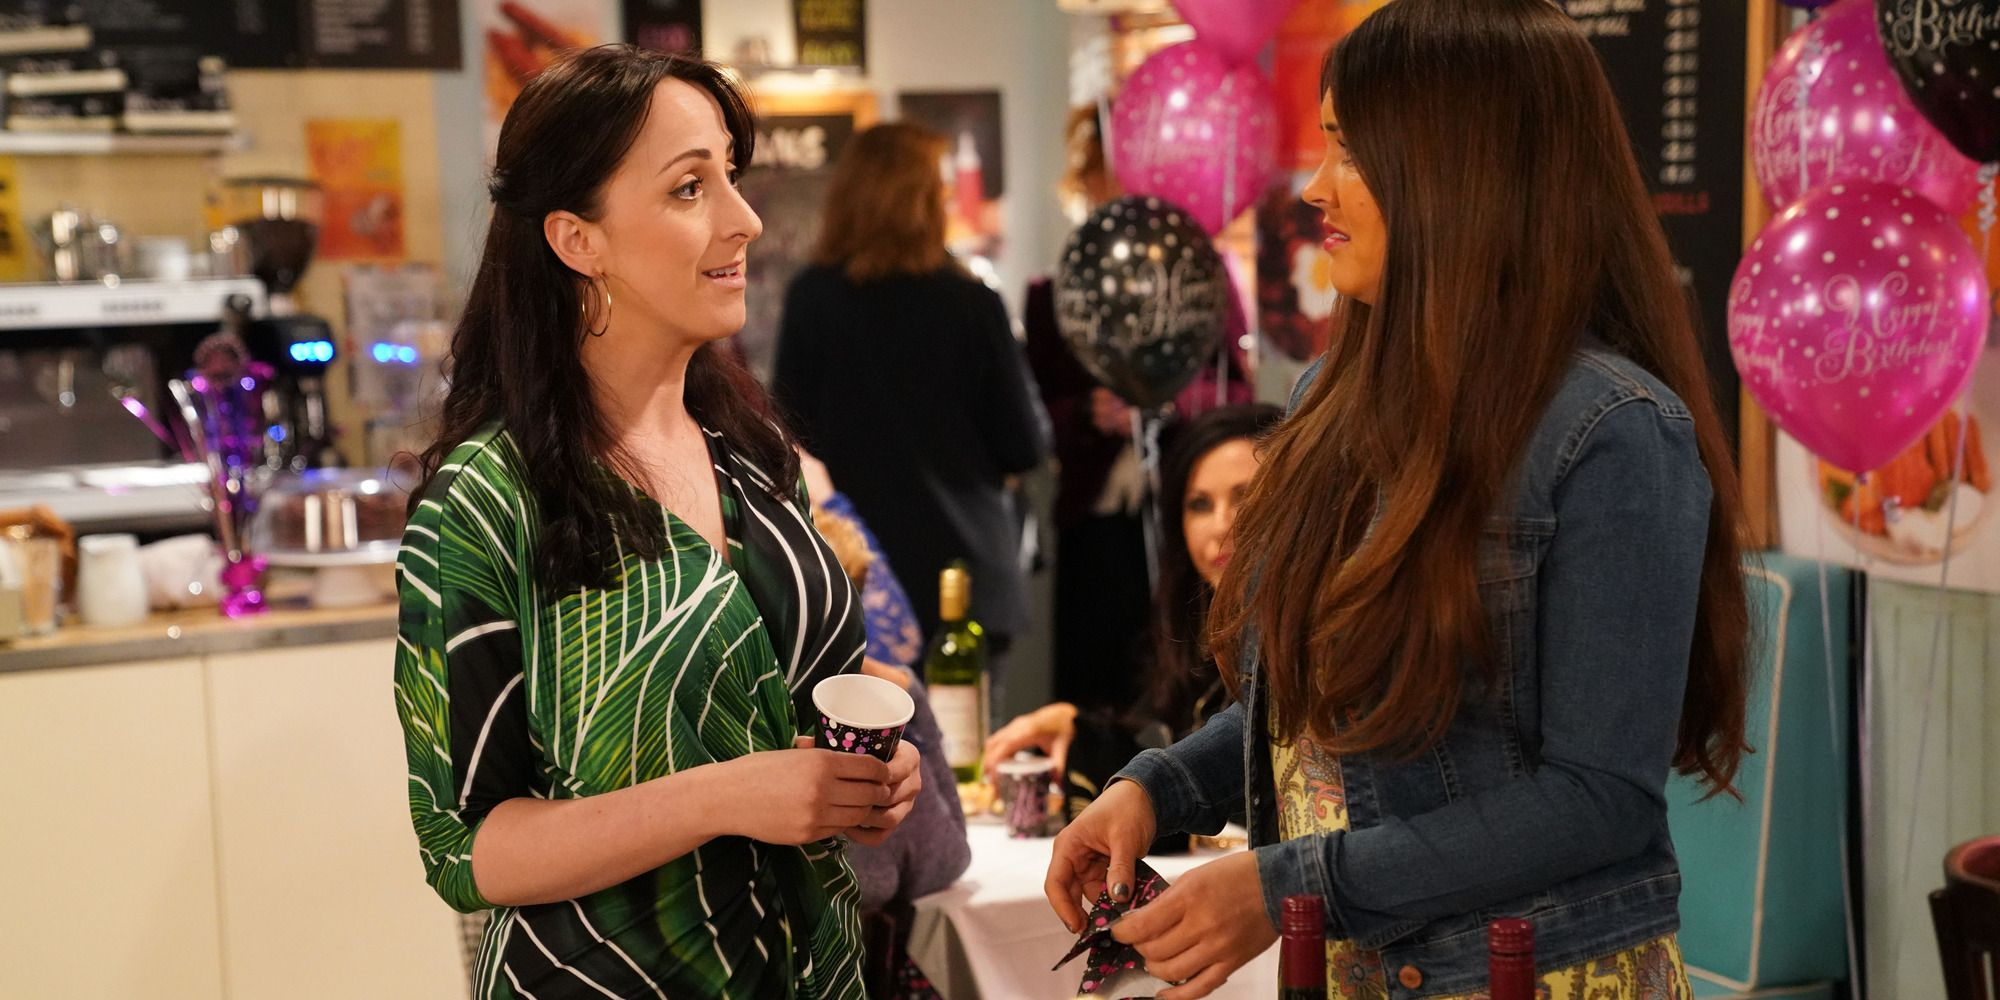 Sonia Fowler feels unsettled by Stacey in EastEnders